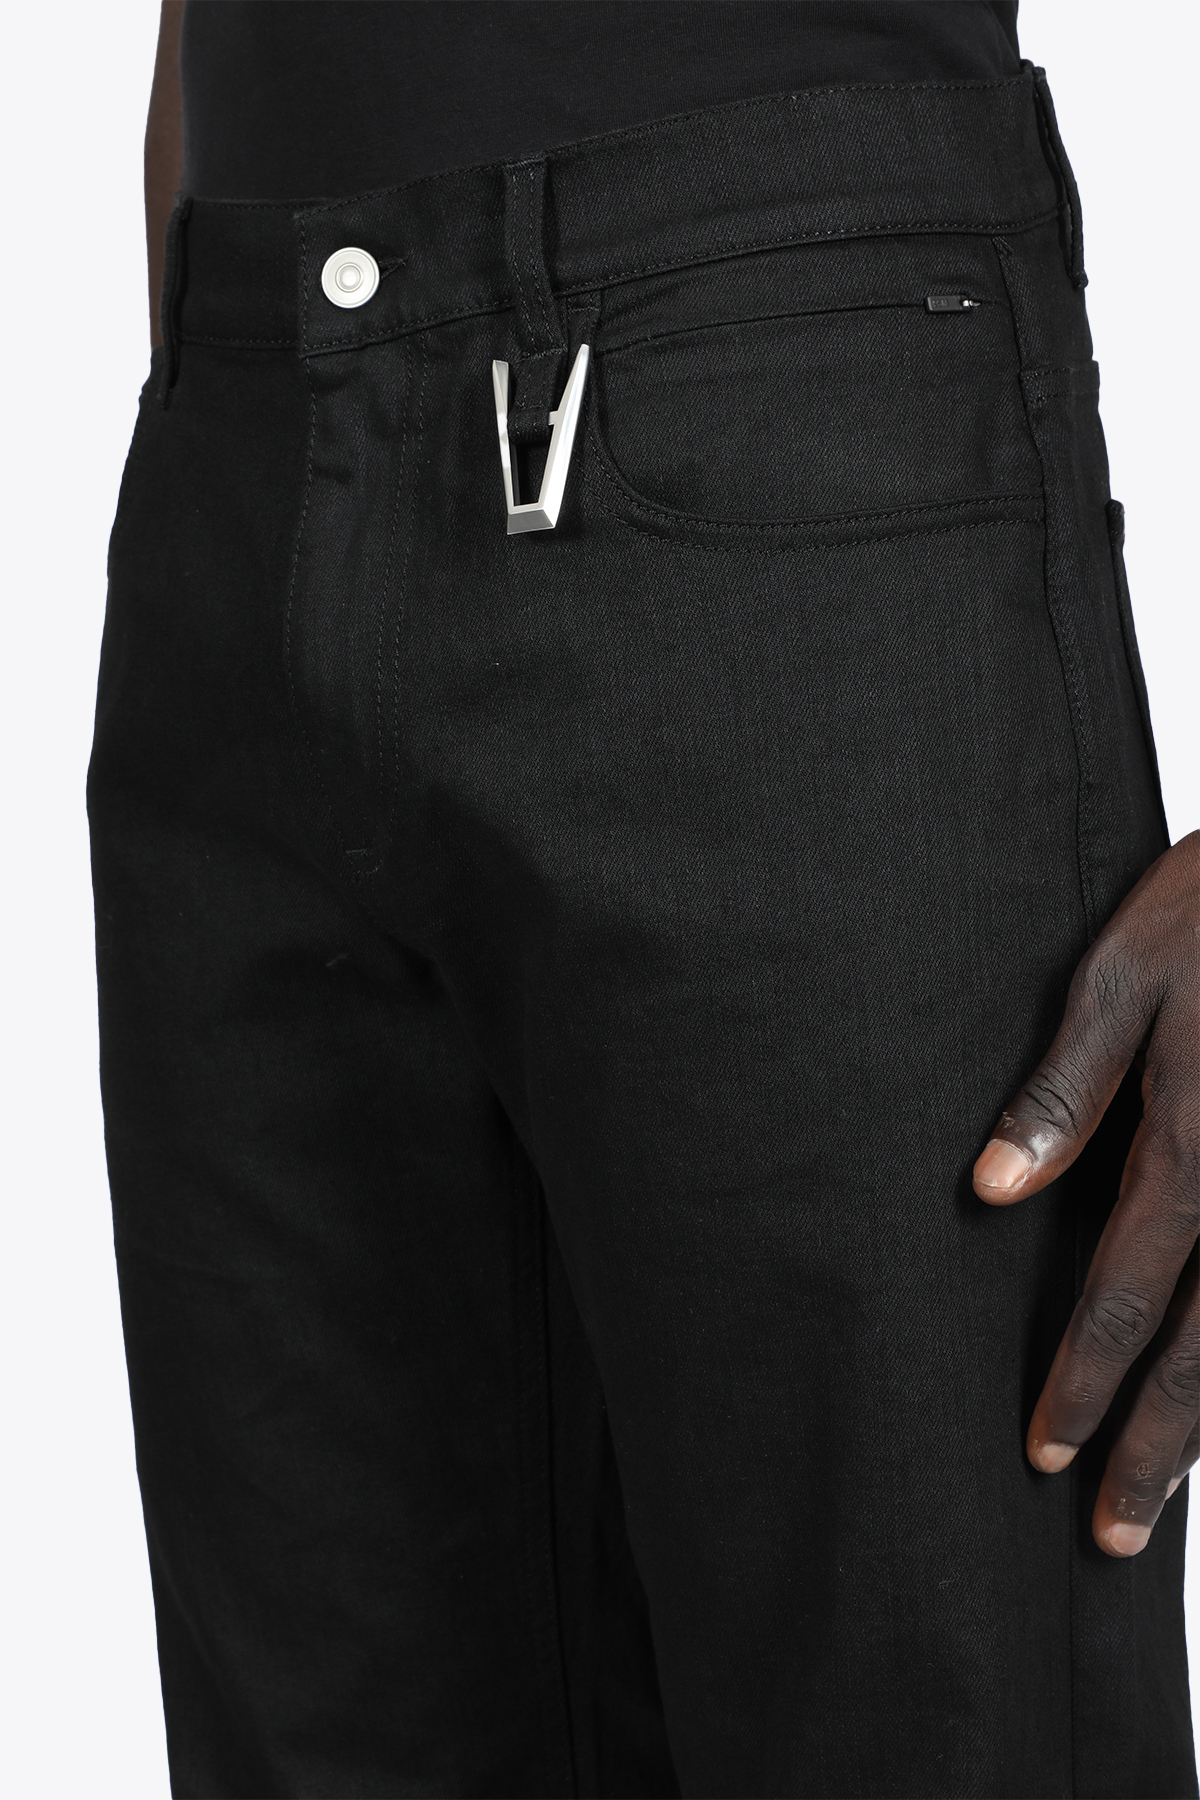 TRUE 6 POCKET JEANS WITH A RING 1017 ALYX 9SM | 9 | AAMPA0212FA01 TRUE 6 POCKET JEANS0001